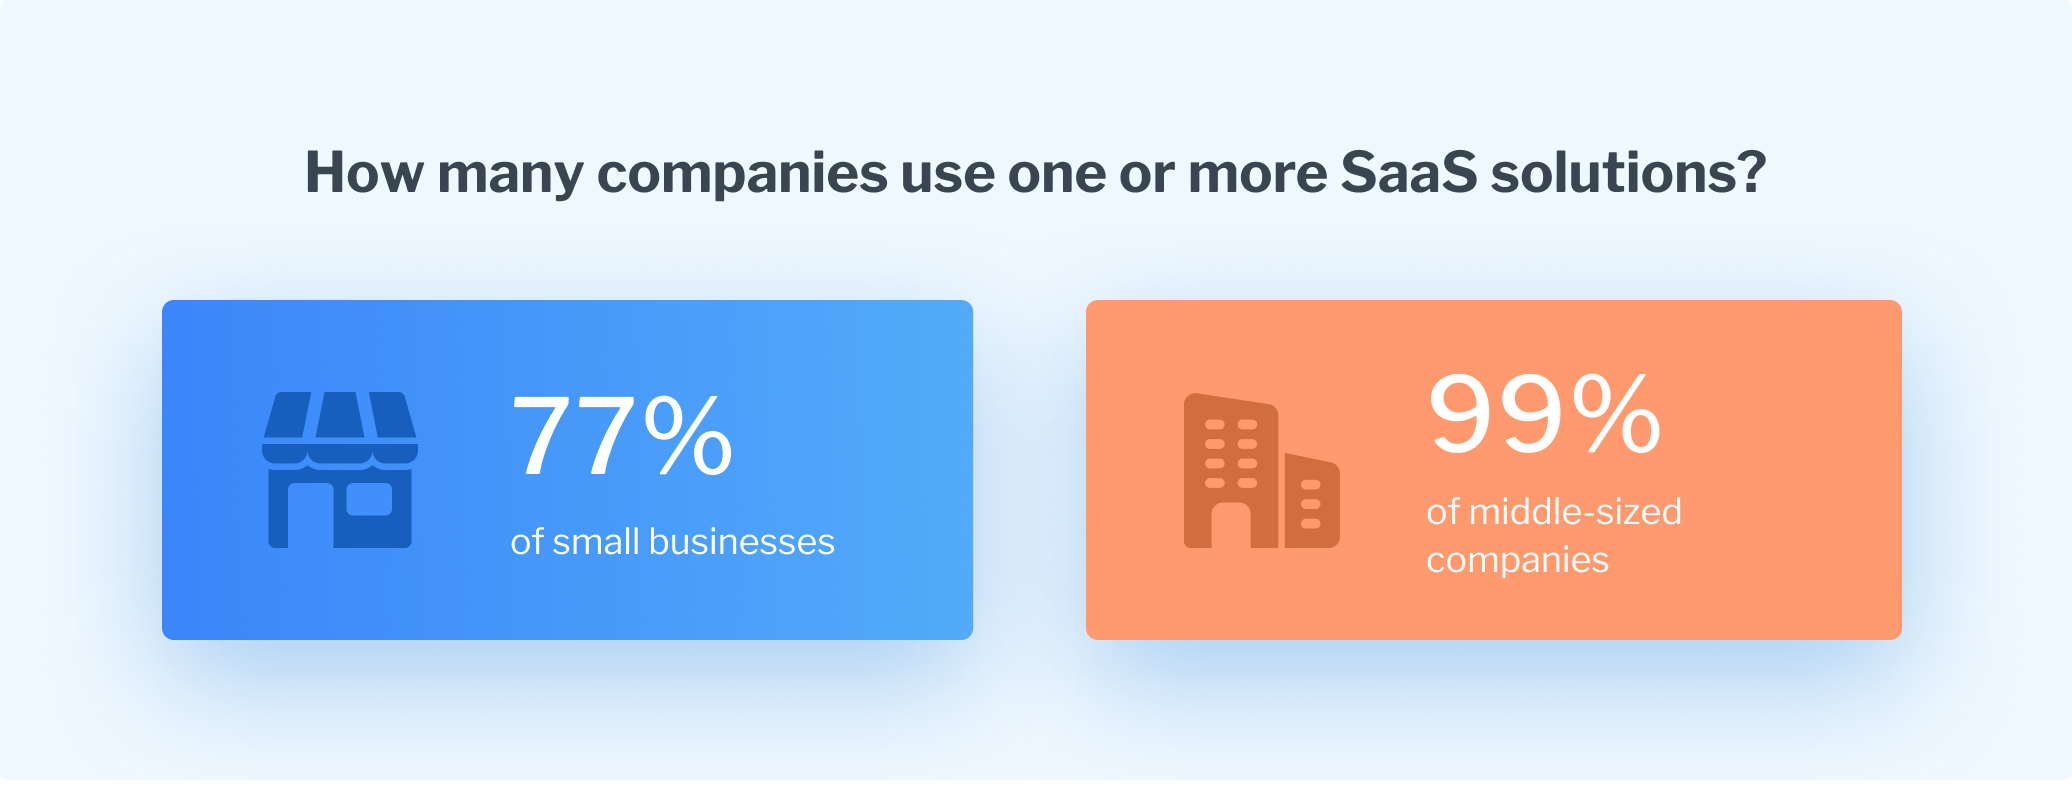 Benefits of B2B SaaS solutions